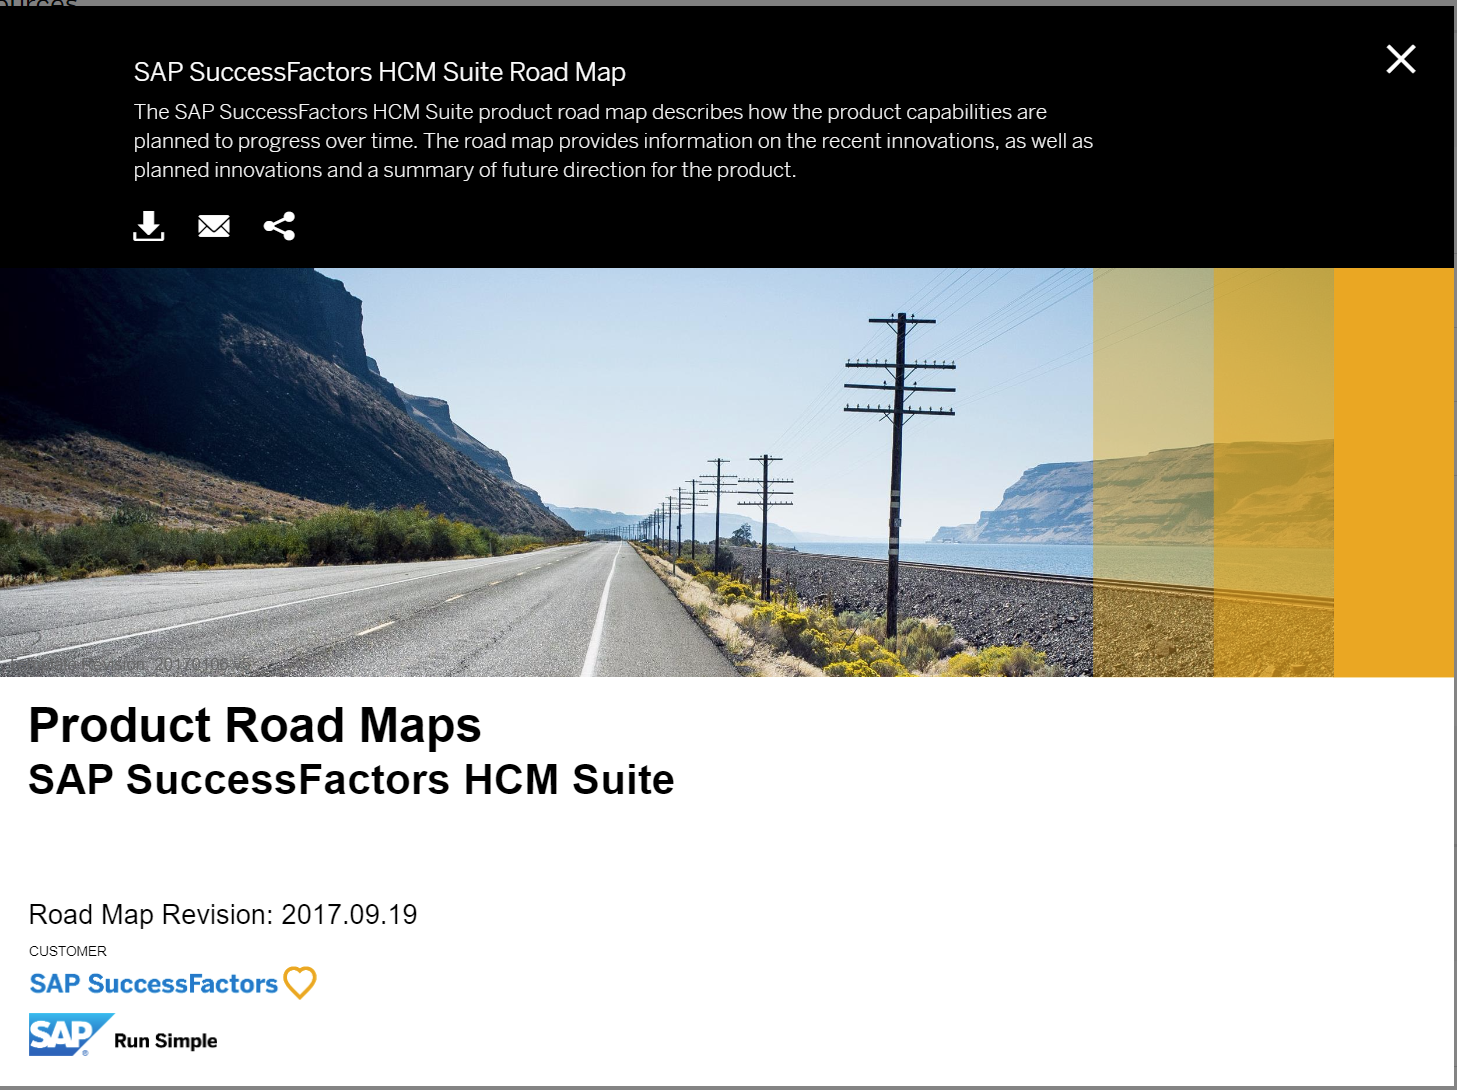 SAP SuccessFactors HCM Suite Road Map